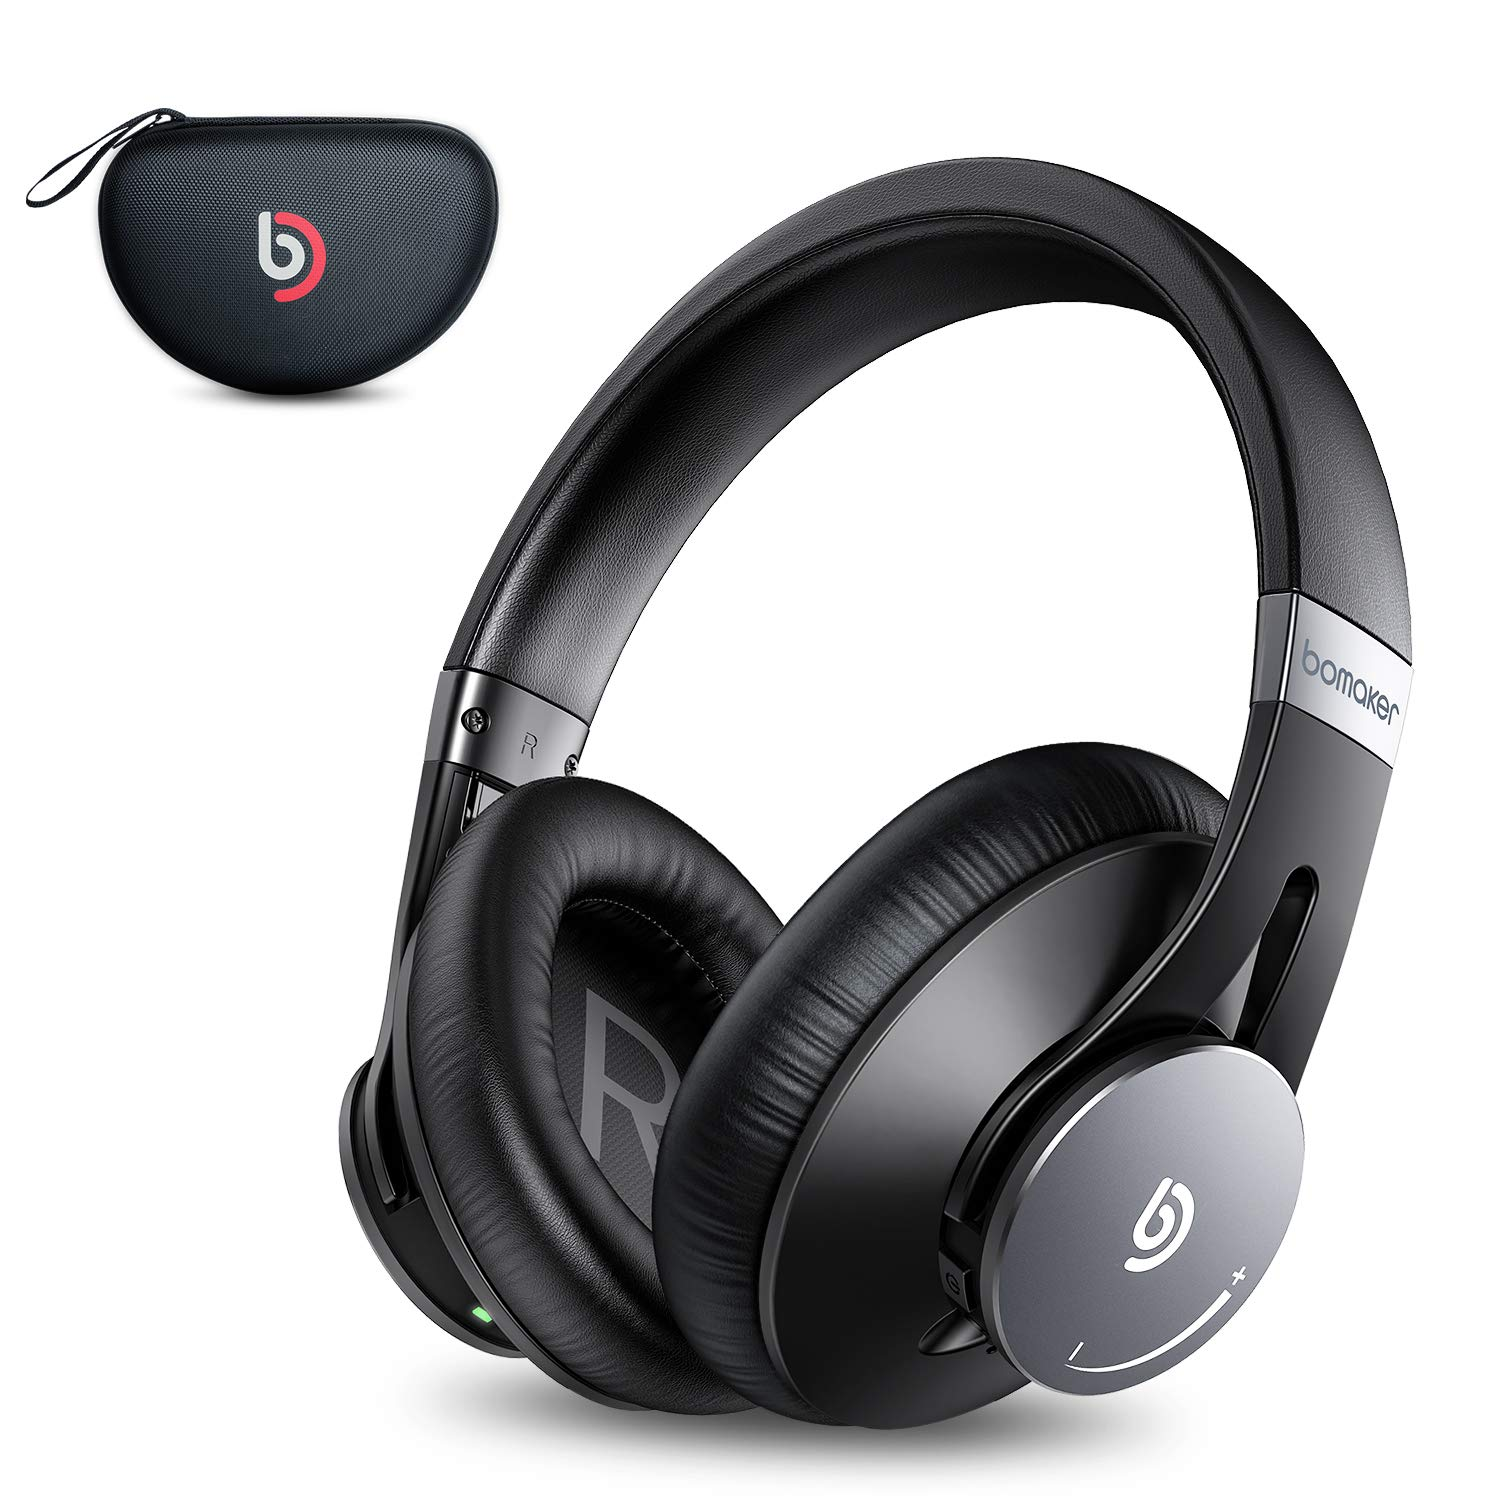 Bomaker Active Noise Cancelling Headphones, Over Ear Headphones Wireless Bluetooth 5.0, CVC 8.0 Microphone, 360°Volume Dial, Hi-Fi Stereo Sound, with Waterproof Case, for PC/Mobile/TV, Black